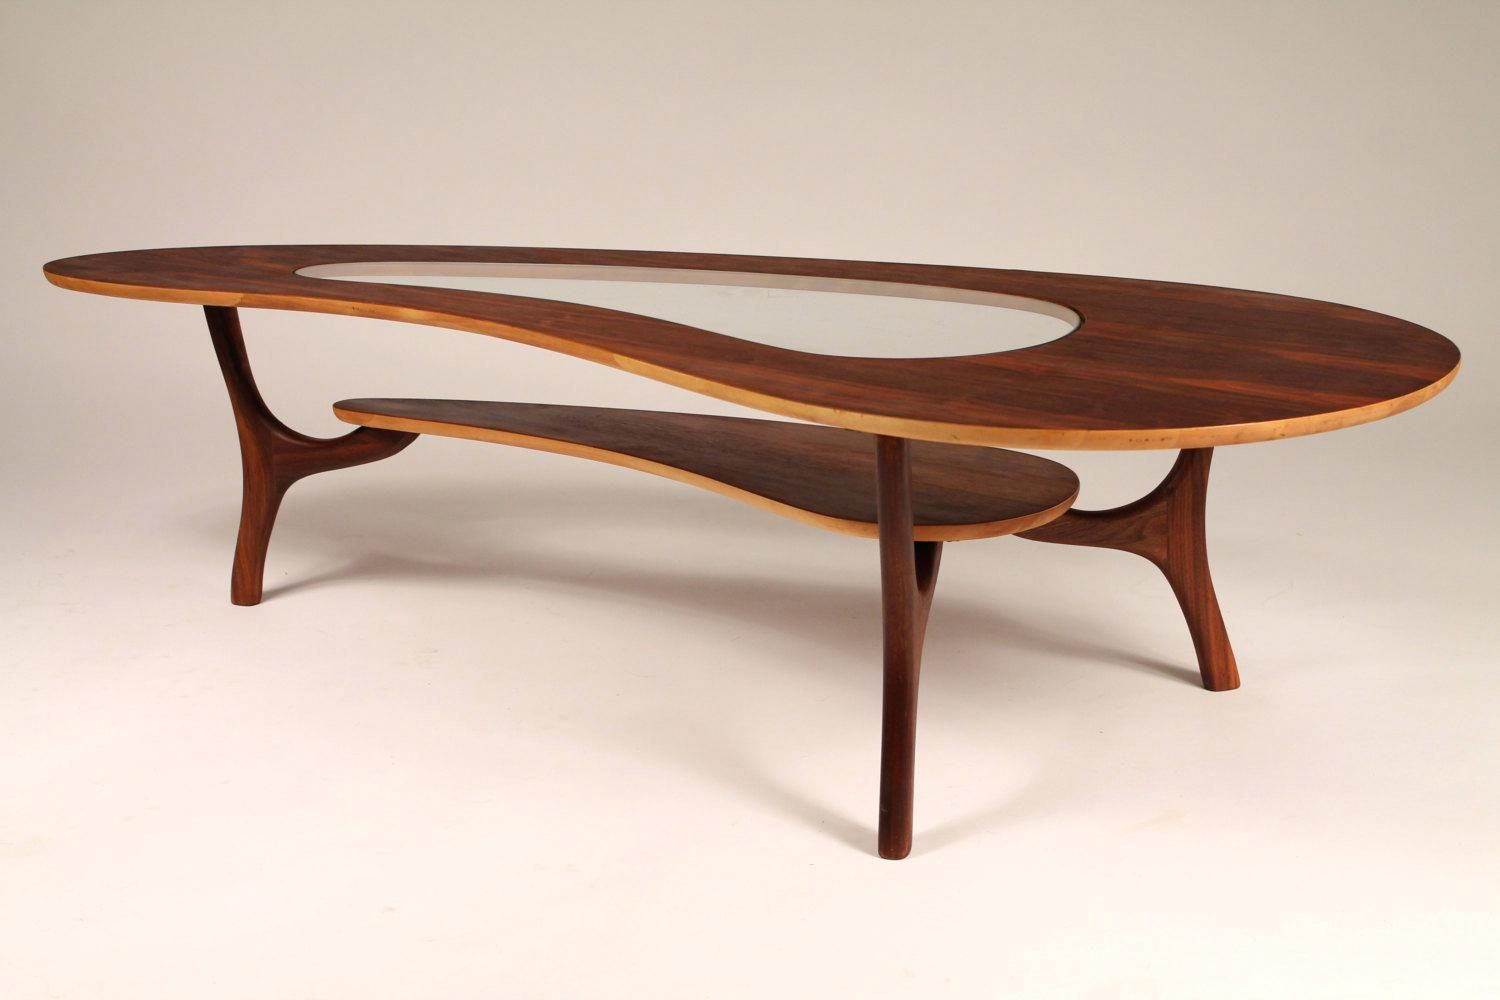 Image Result For Kidney Shaped Coffee Table With Glass Insert